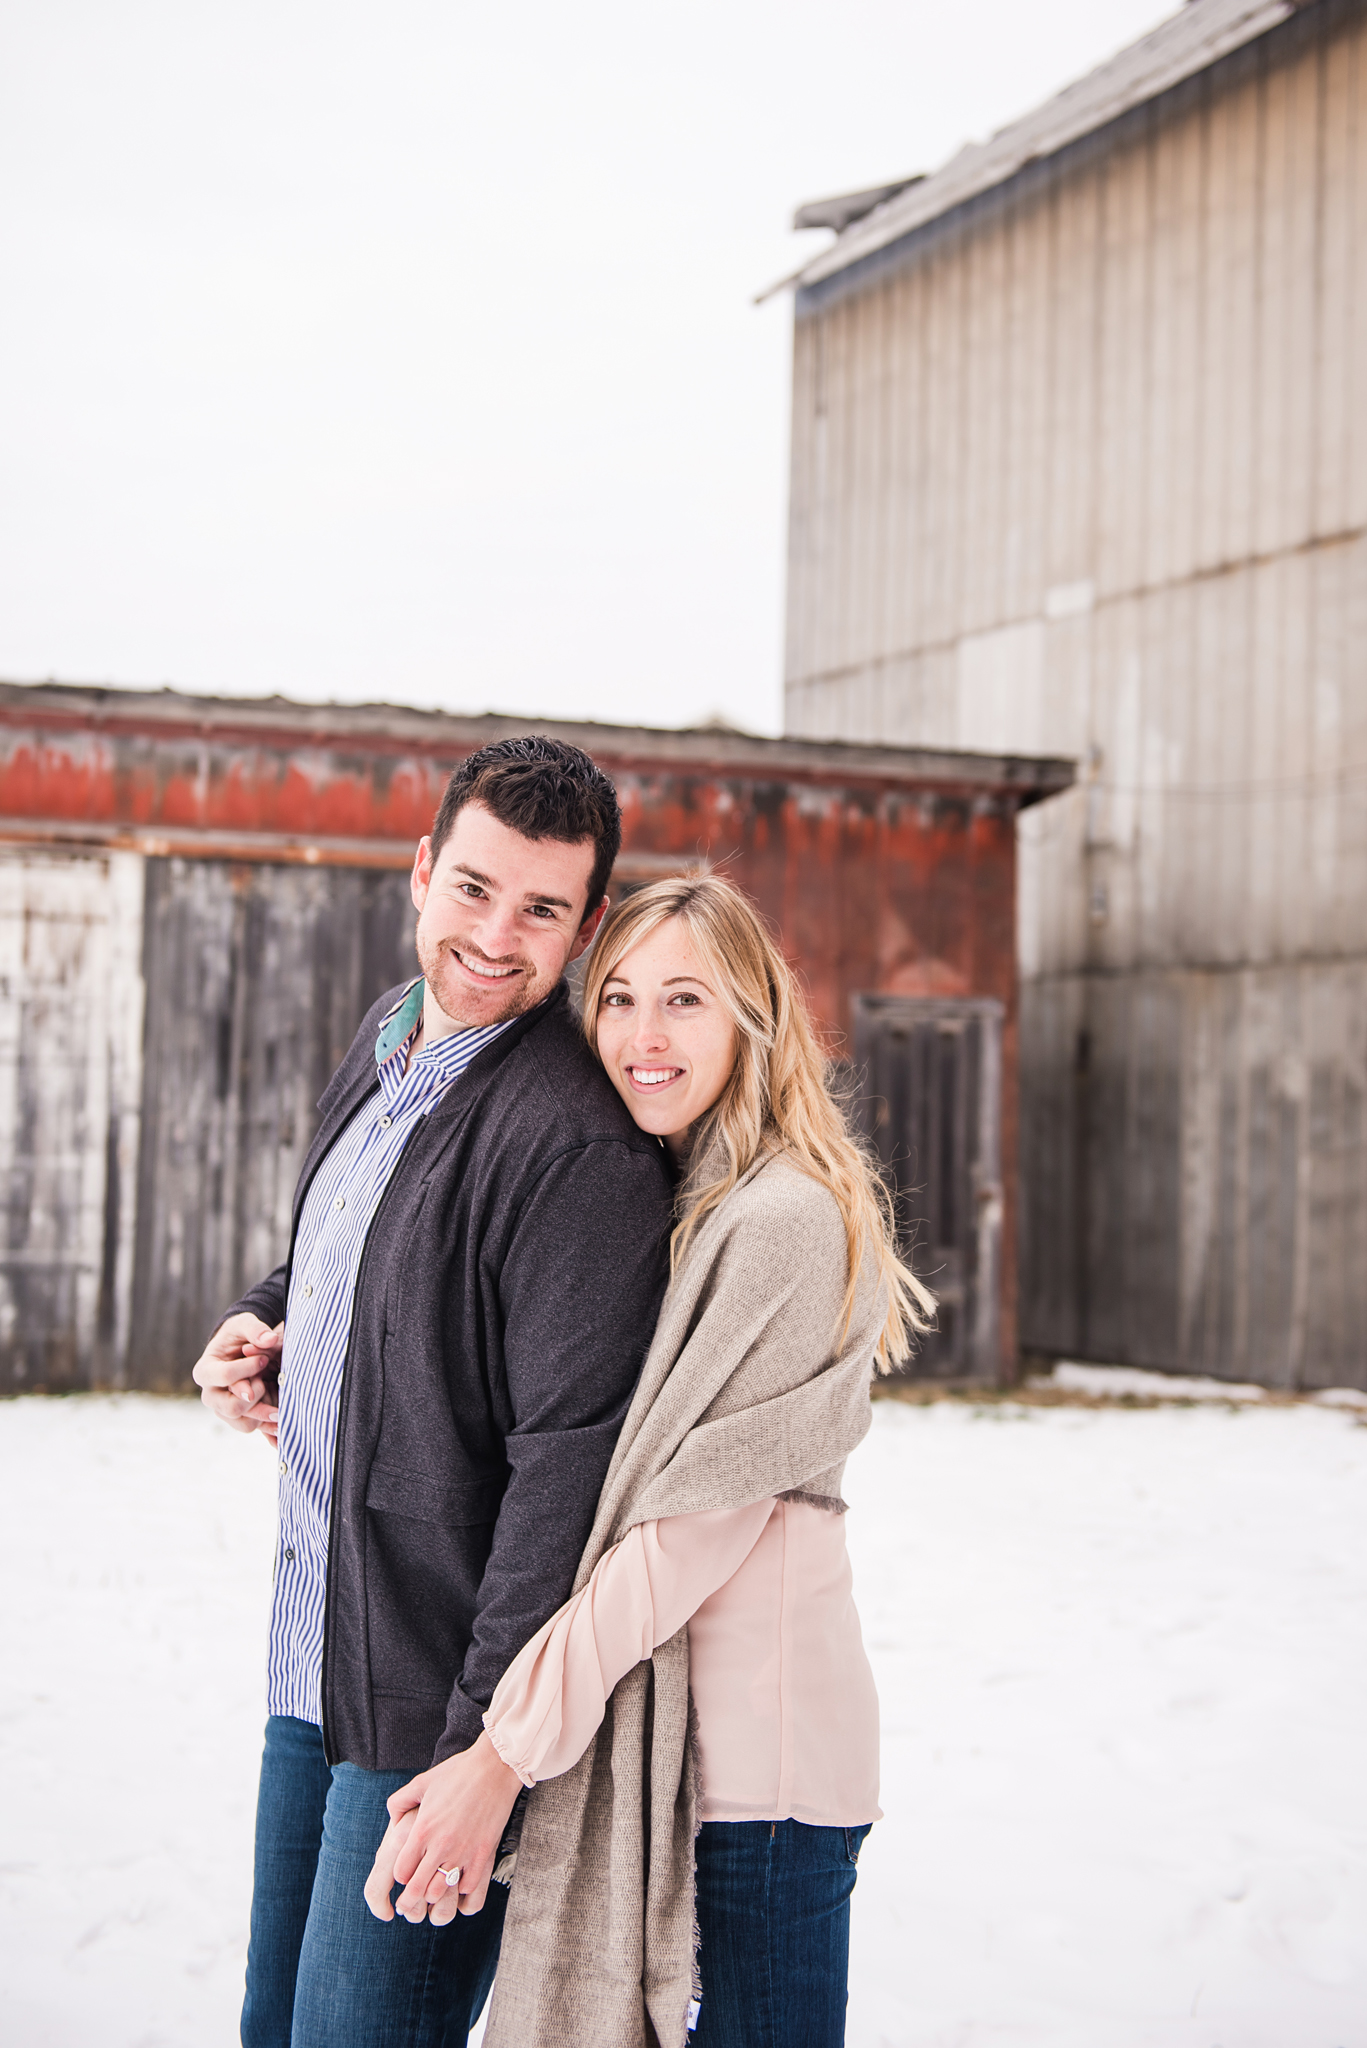 Schoen_Place_Rochester_Engagement_Session_JILL_STUDIO_Rochester_NY_Photographer_DSC_1218.jpg